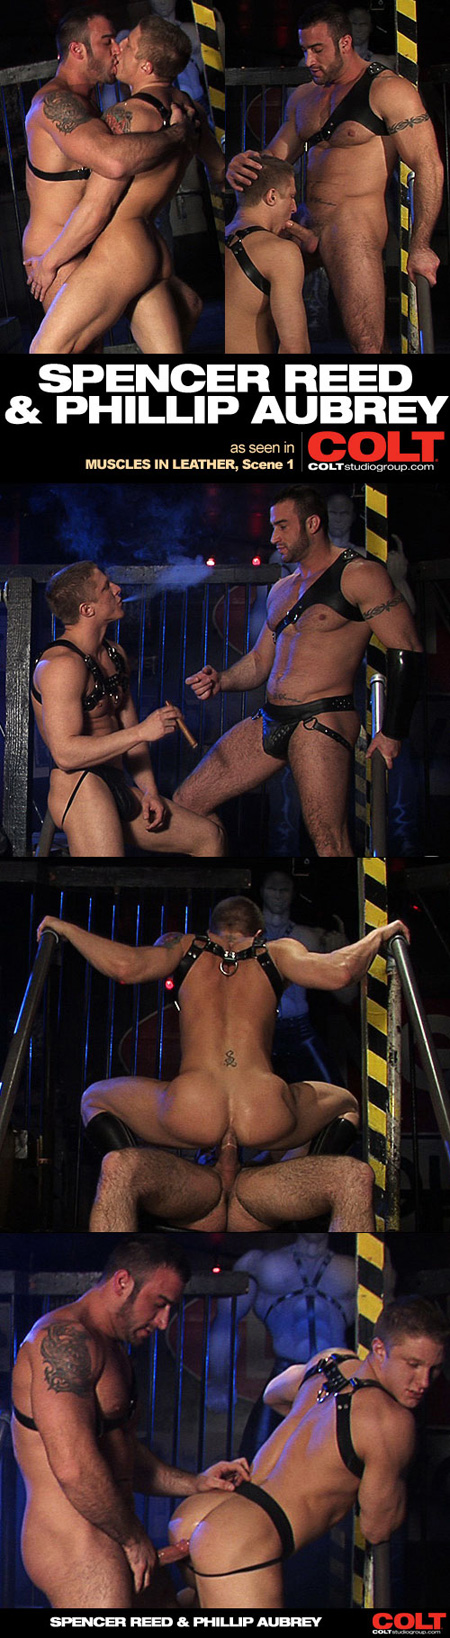 Muscular blonde leatherman in a jockstrap smokes cigars and gets fucked by a hairy beard, tattooed leather Daddy.